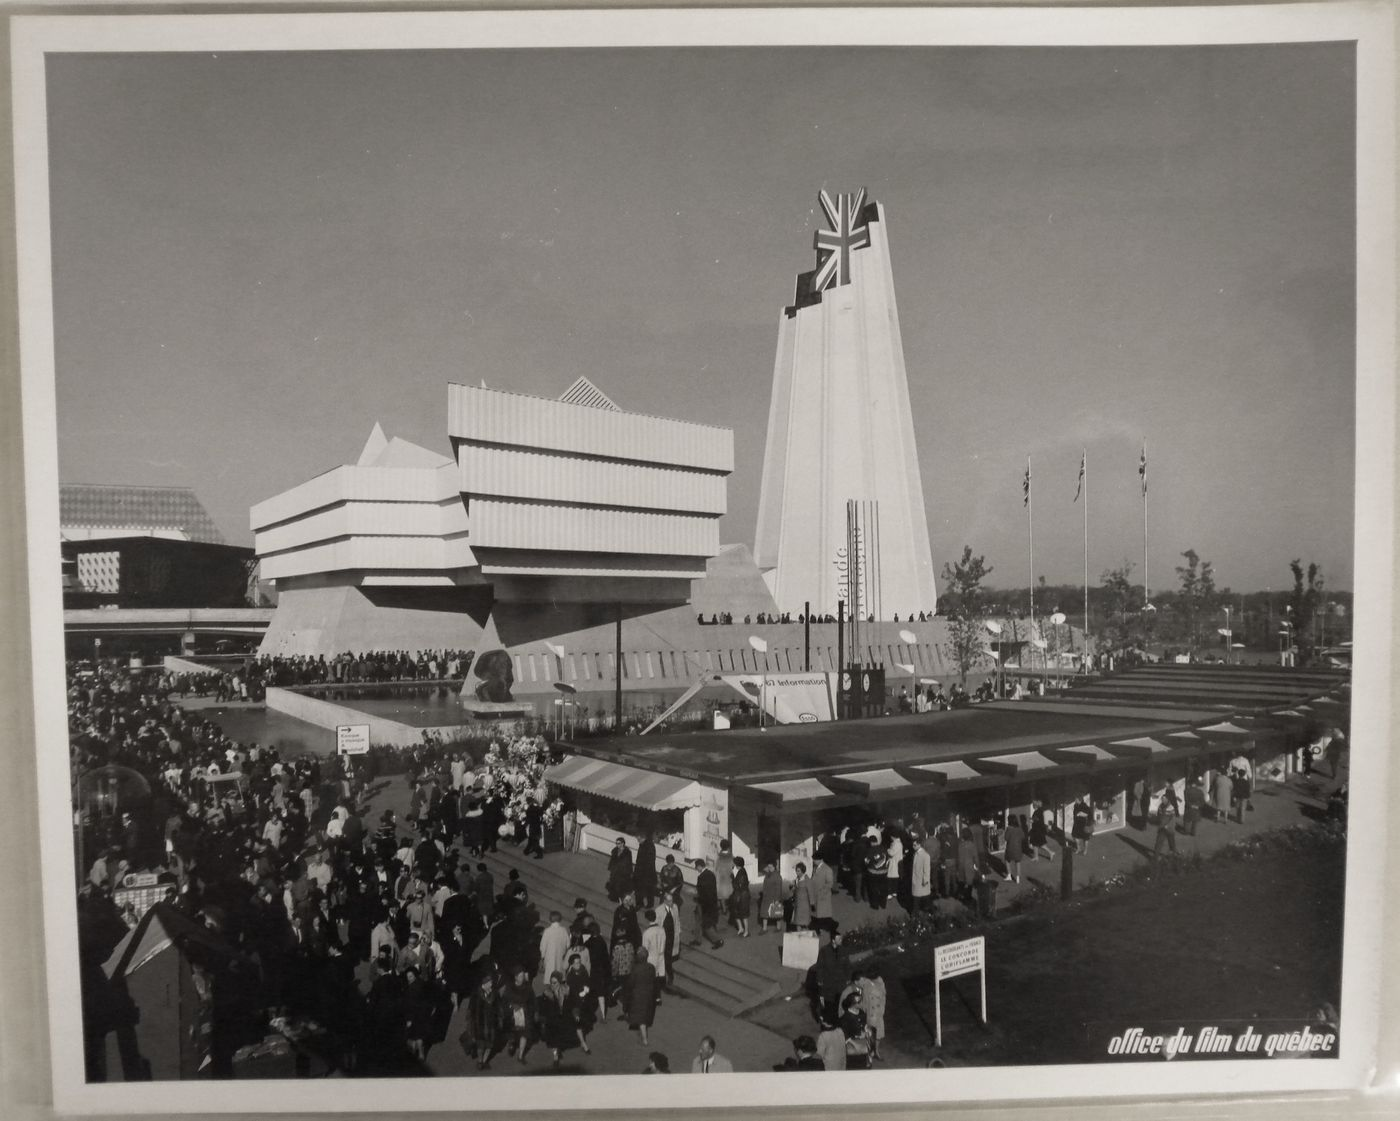 View of the Pavilion of Great Britain with boutiques in foreground, Expo 67, Montréal, Québec